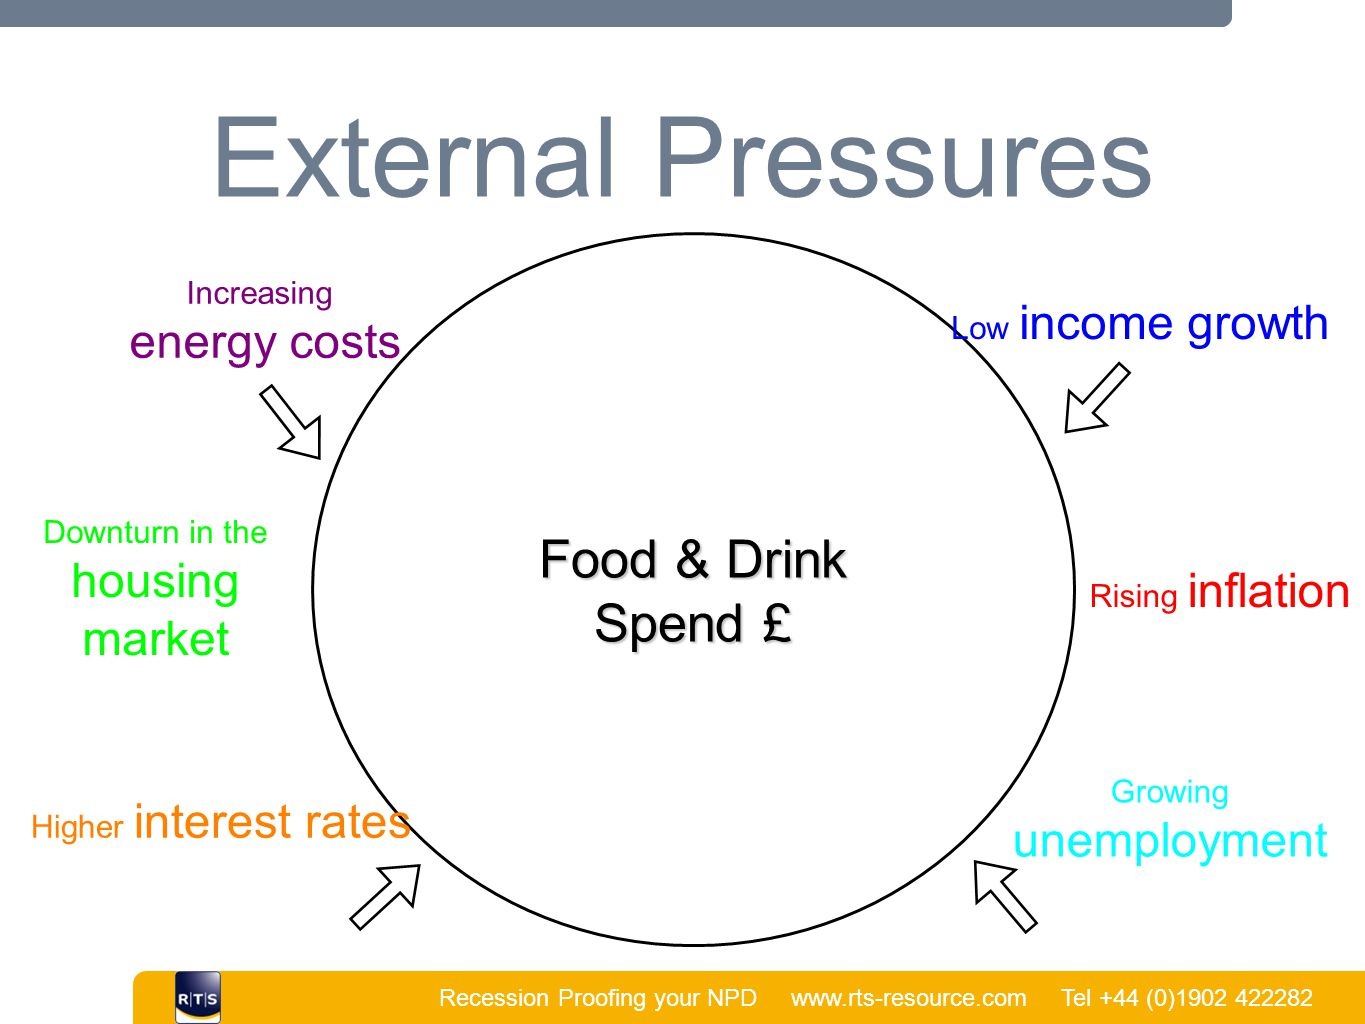 Recession Proofing your NPD www.rts-resource.com Tel +44 (0)1902 422282 | External Pressures Food & Drink Spend £ Low income growth Increasing energy